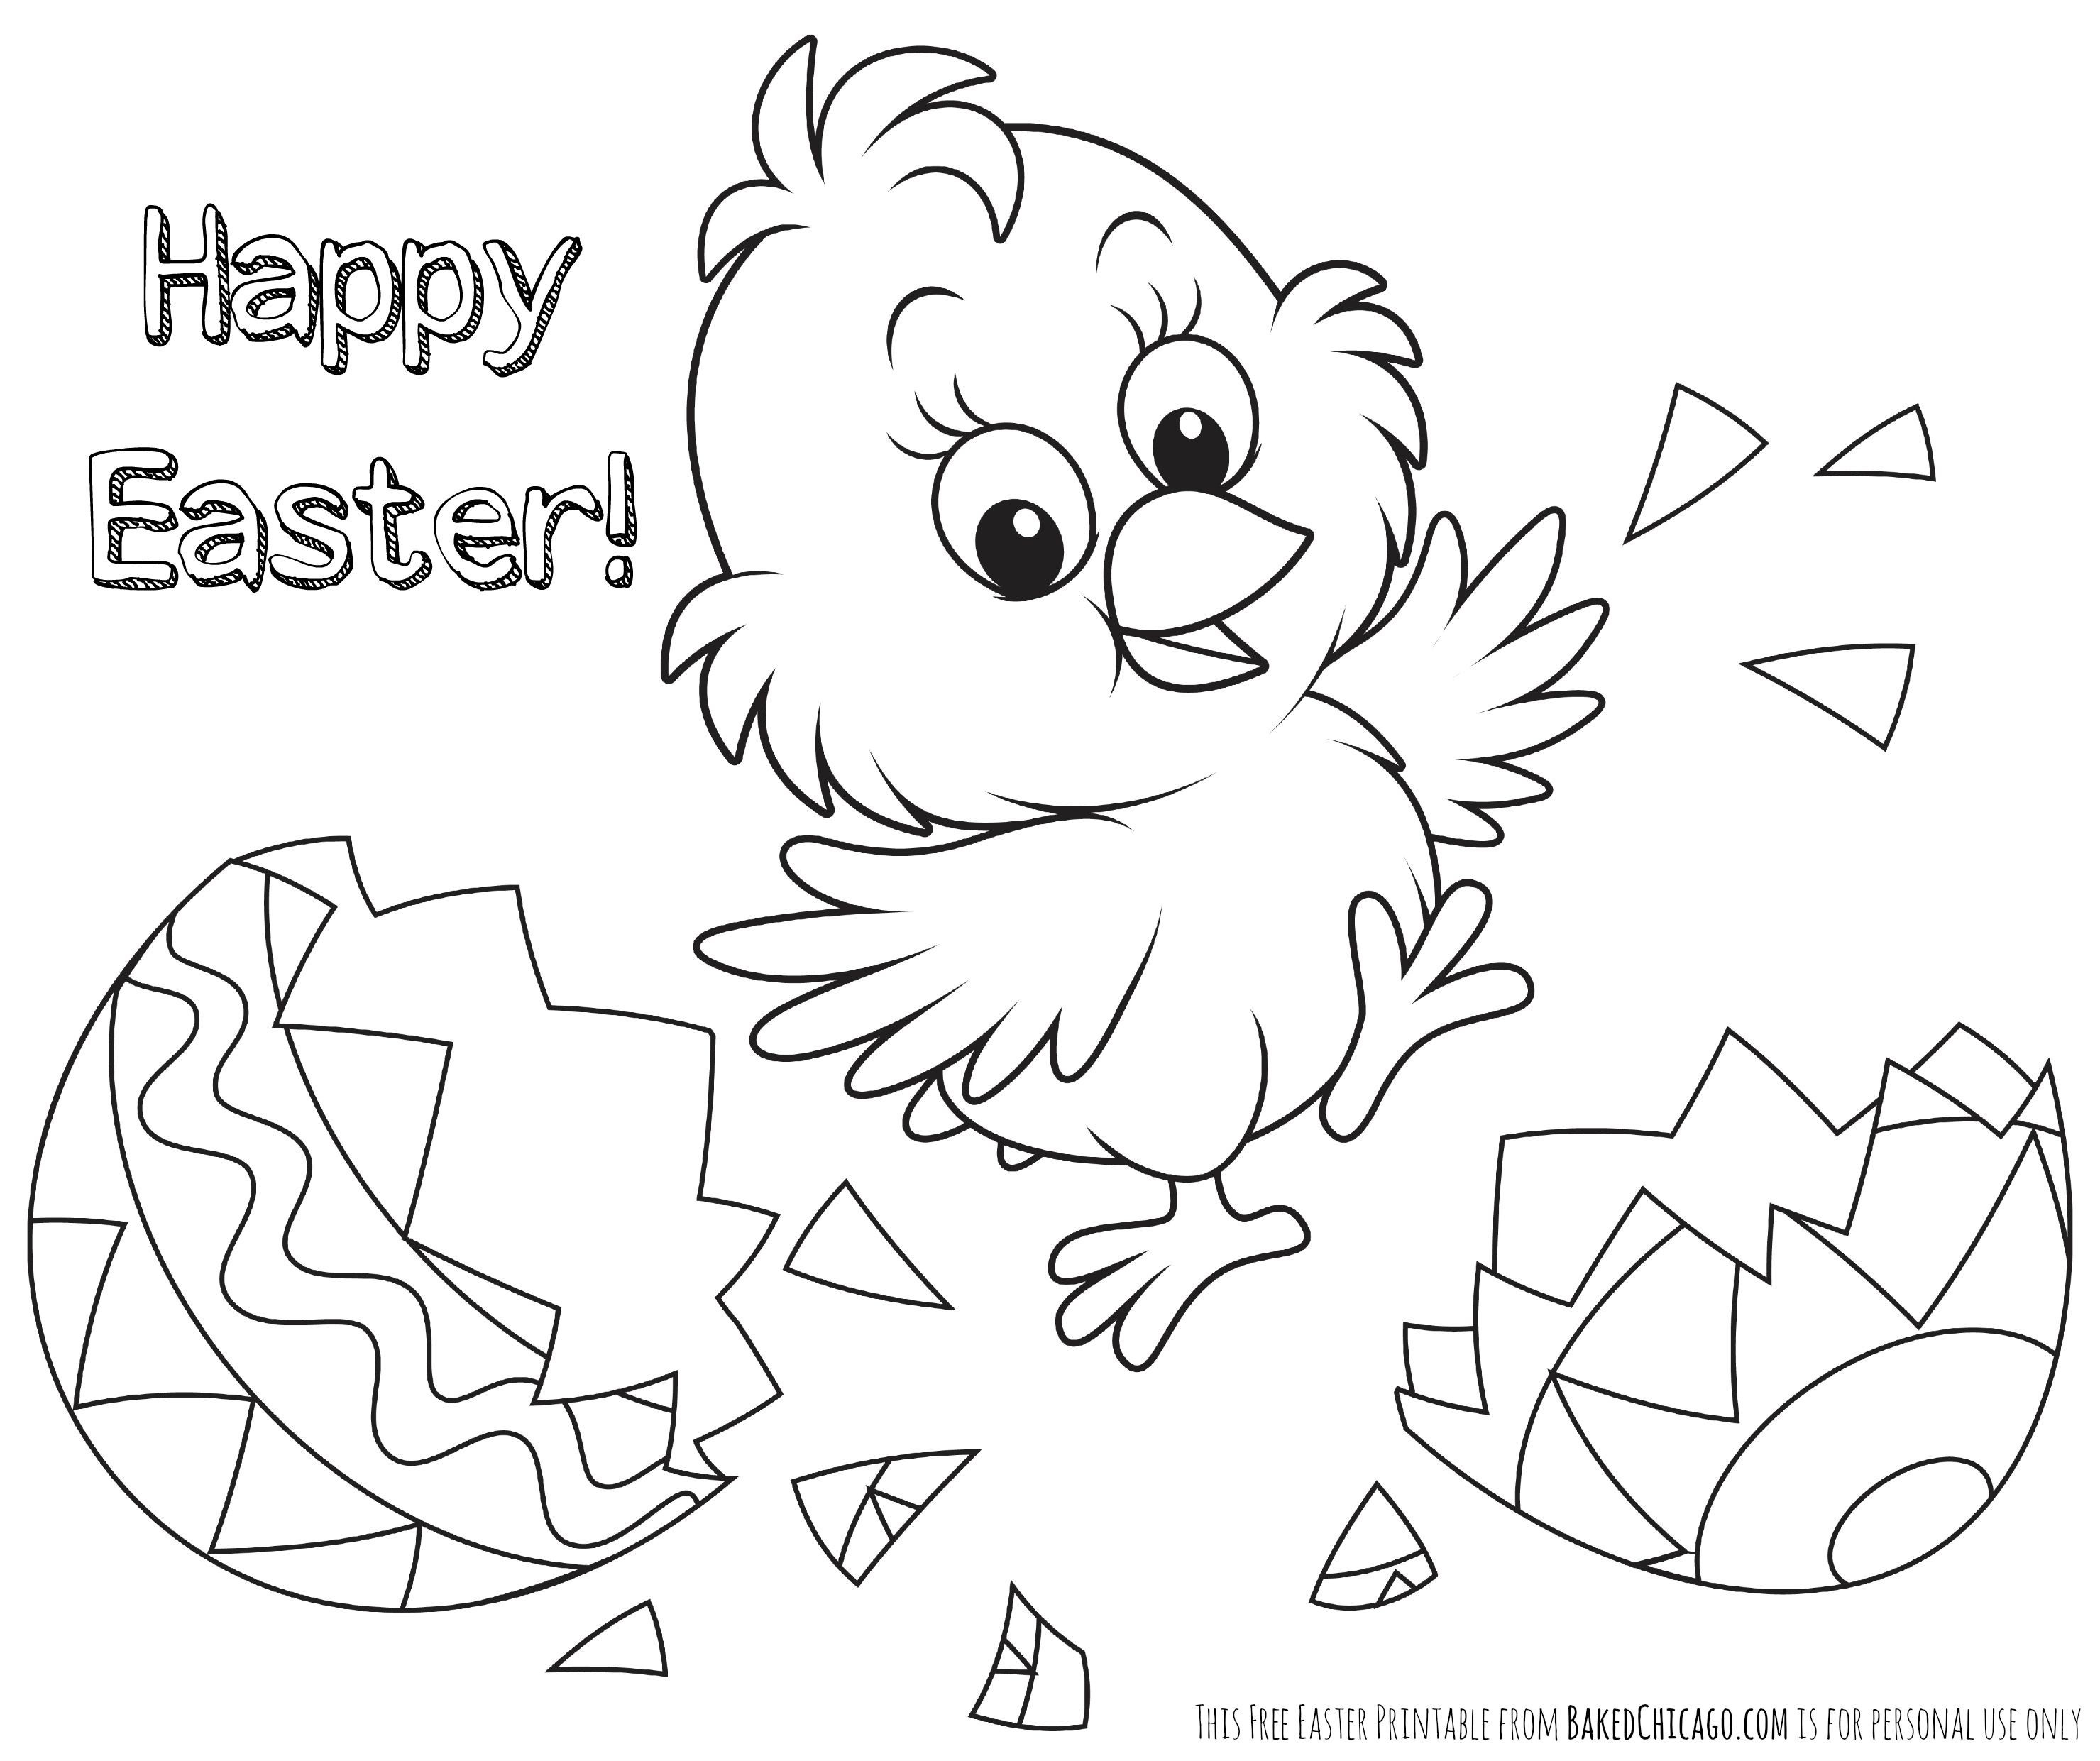 12 Free Printable Easter Coloring Pages | Topsailmultimedia - Free Printable Easter Pages